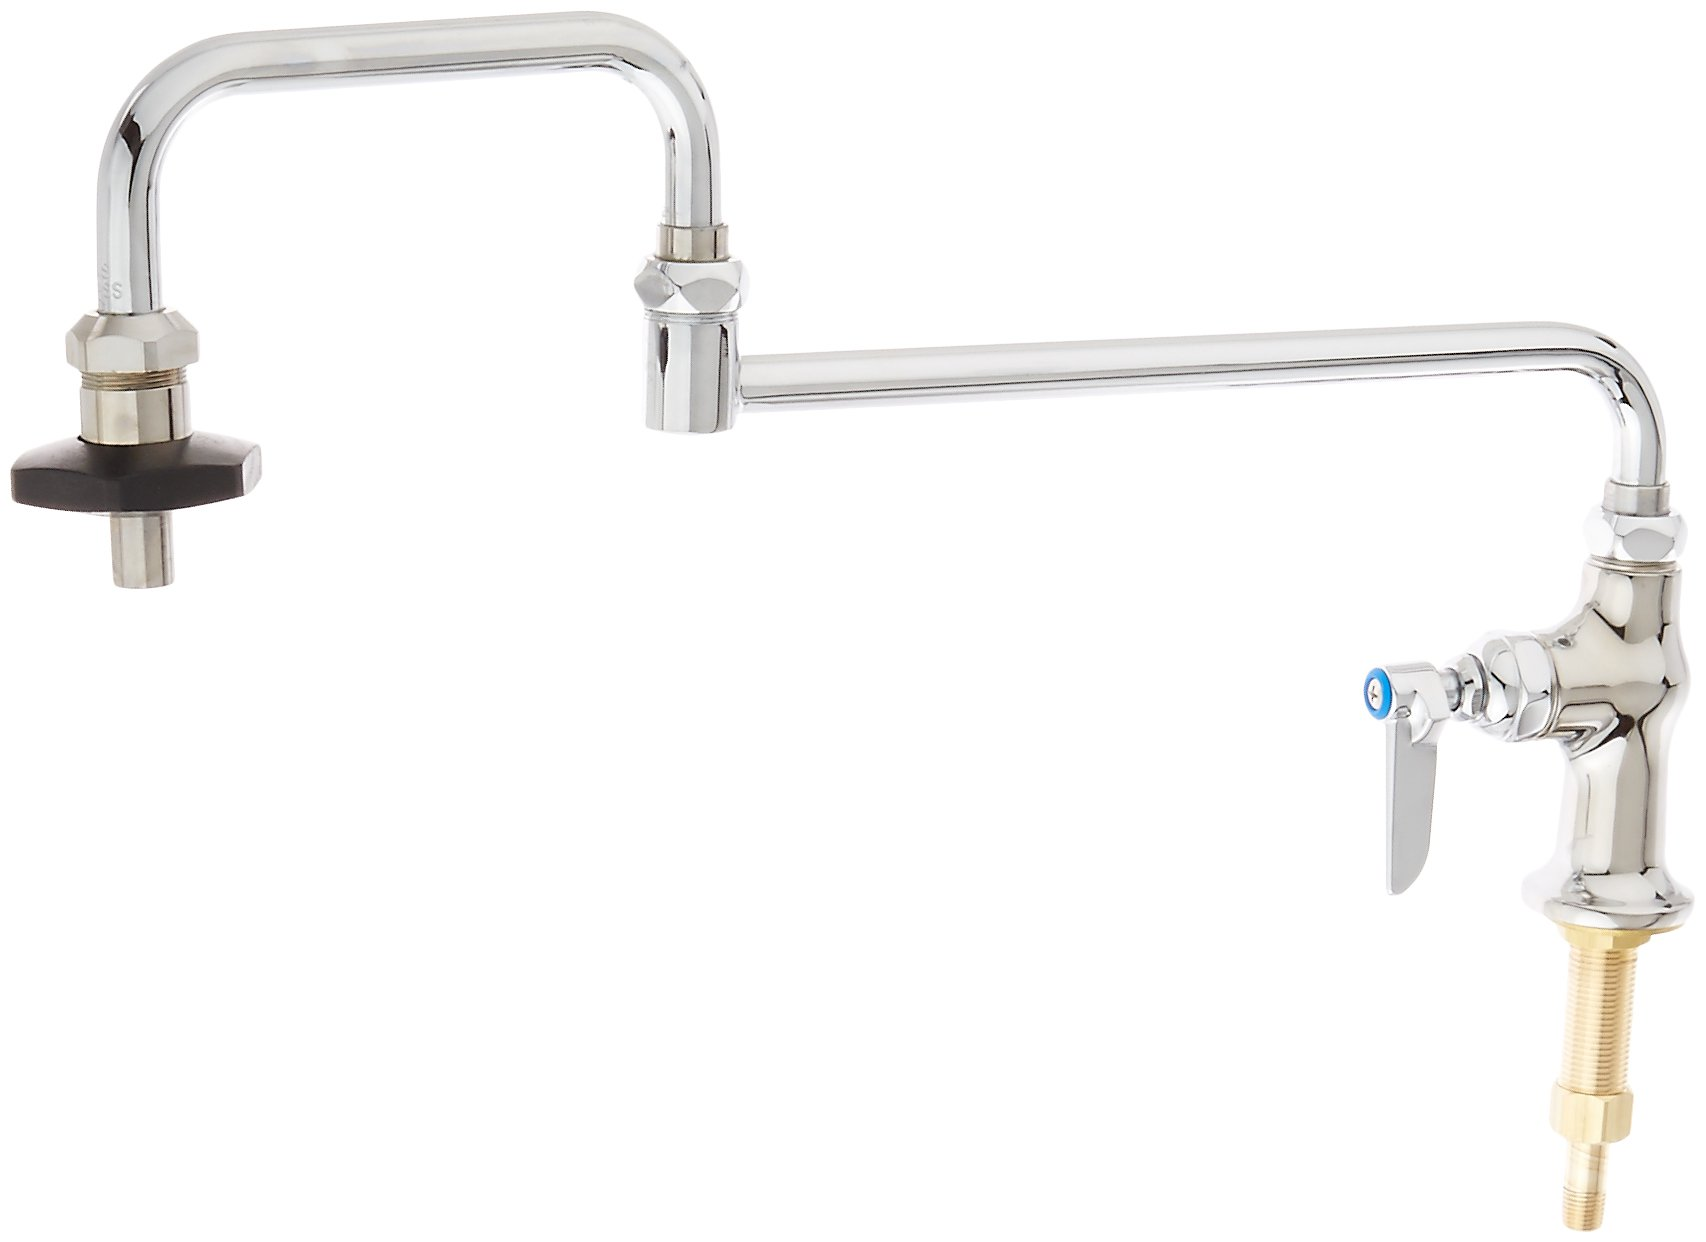 T&S Brass B-0590 Deck Mount Single Control 18-Inch Double Joint Nozzle Insulated Pot Filler with On-Off Control